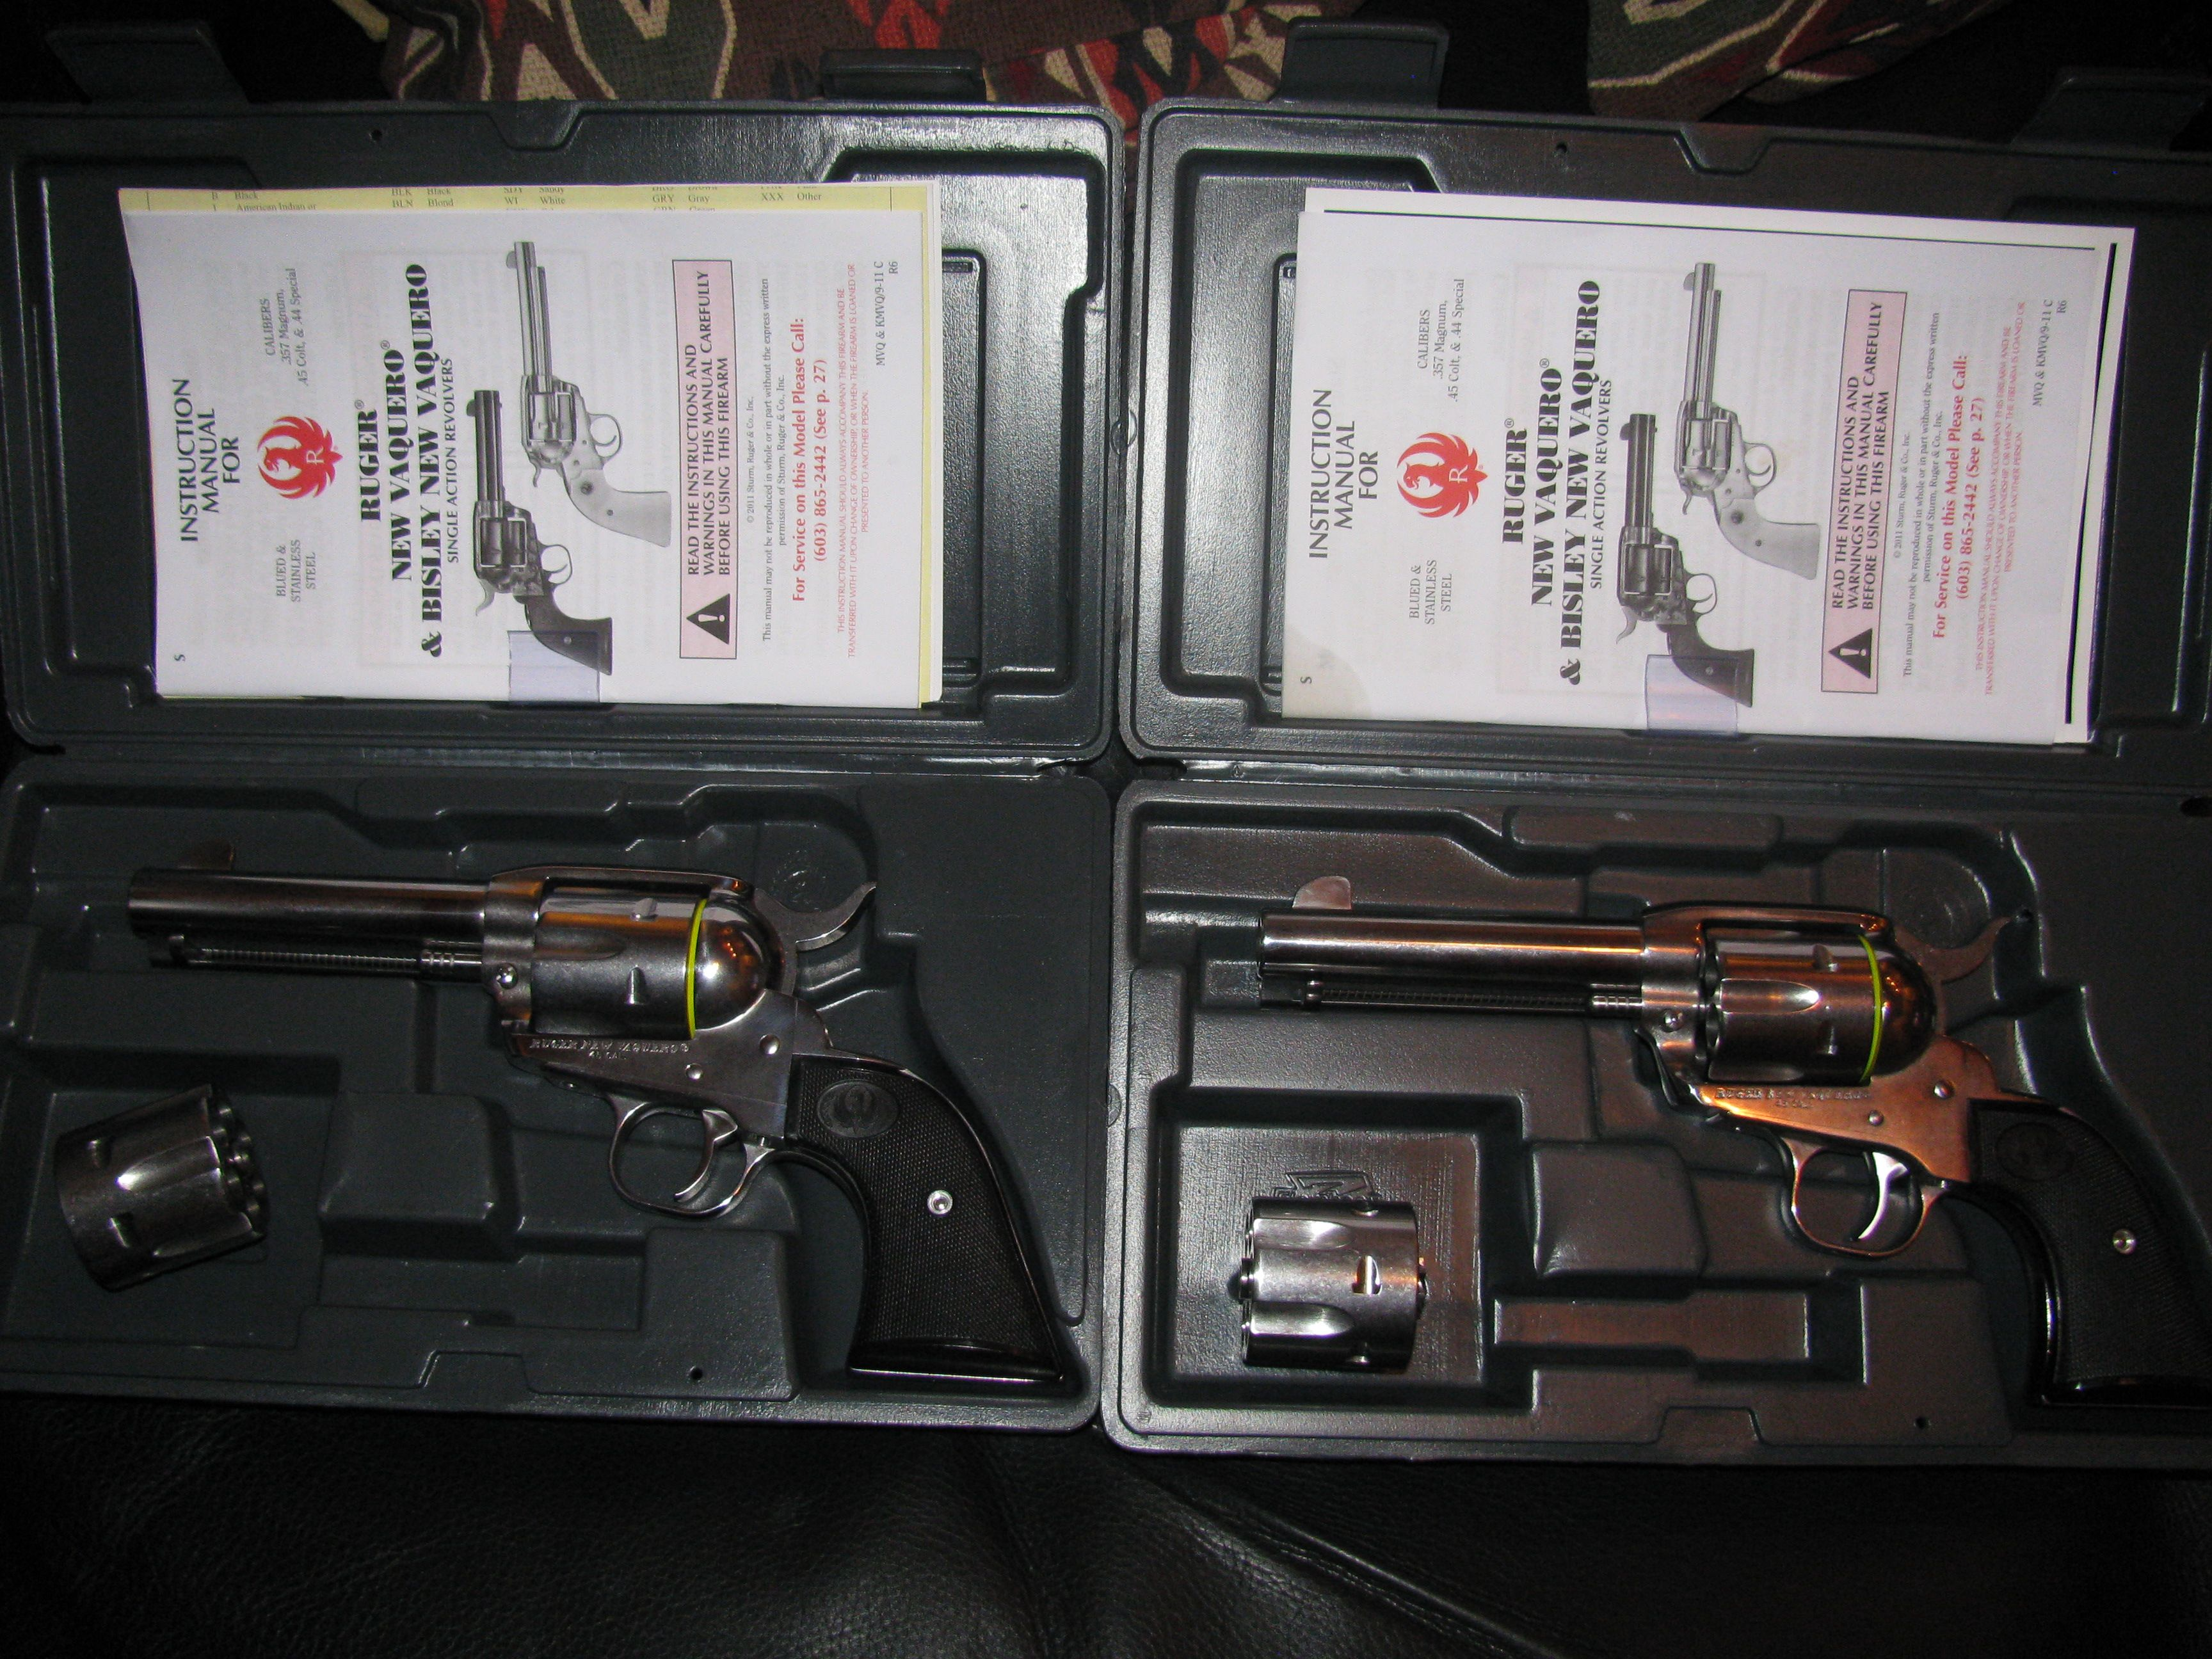 The new Ruger forum - Ruger Handgun Forum